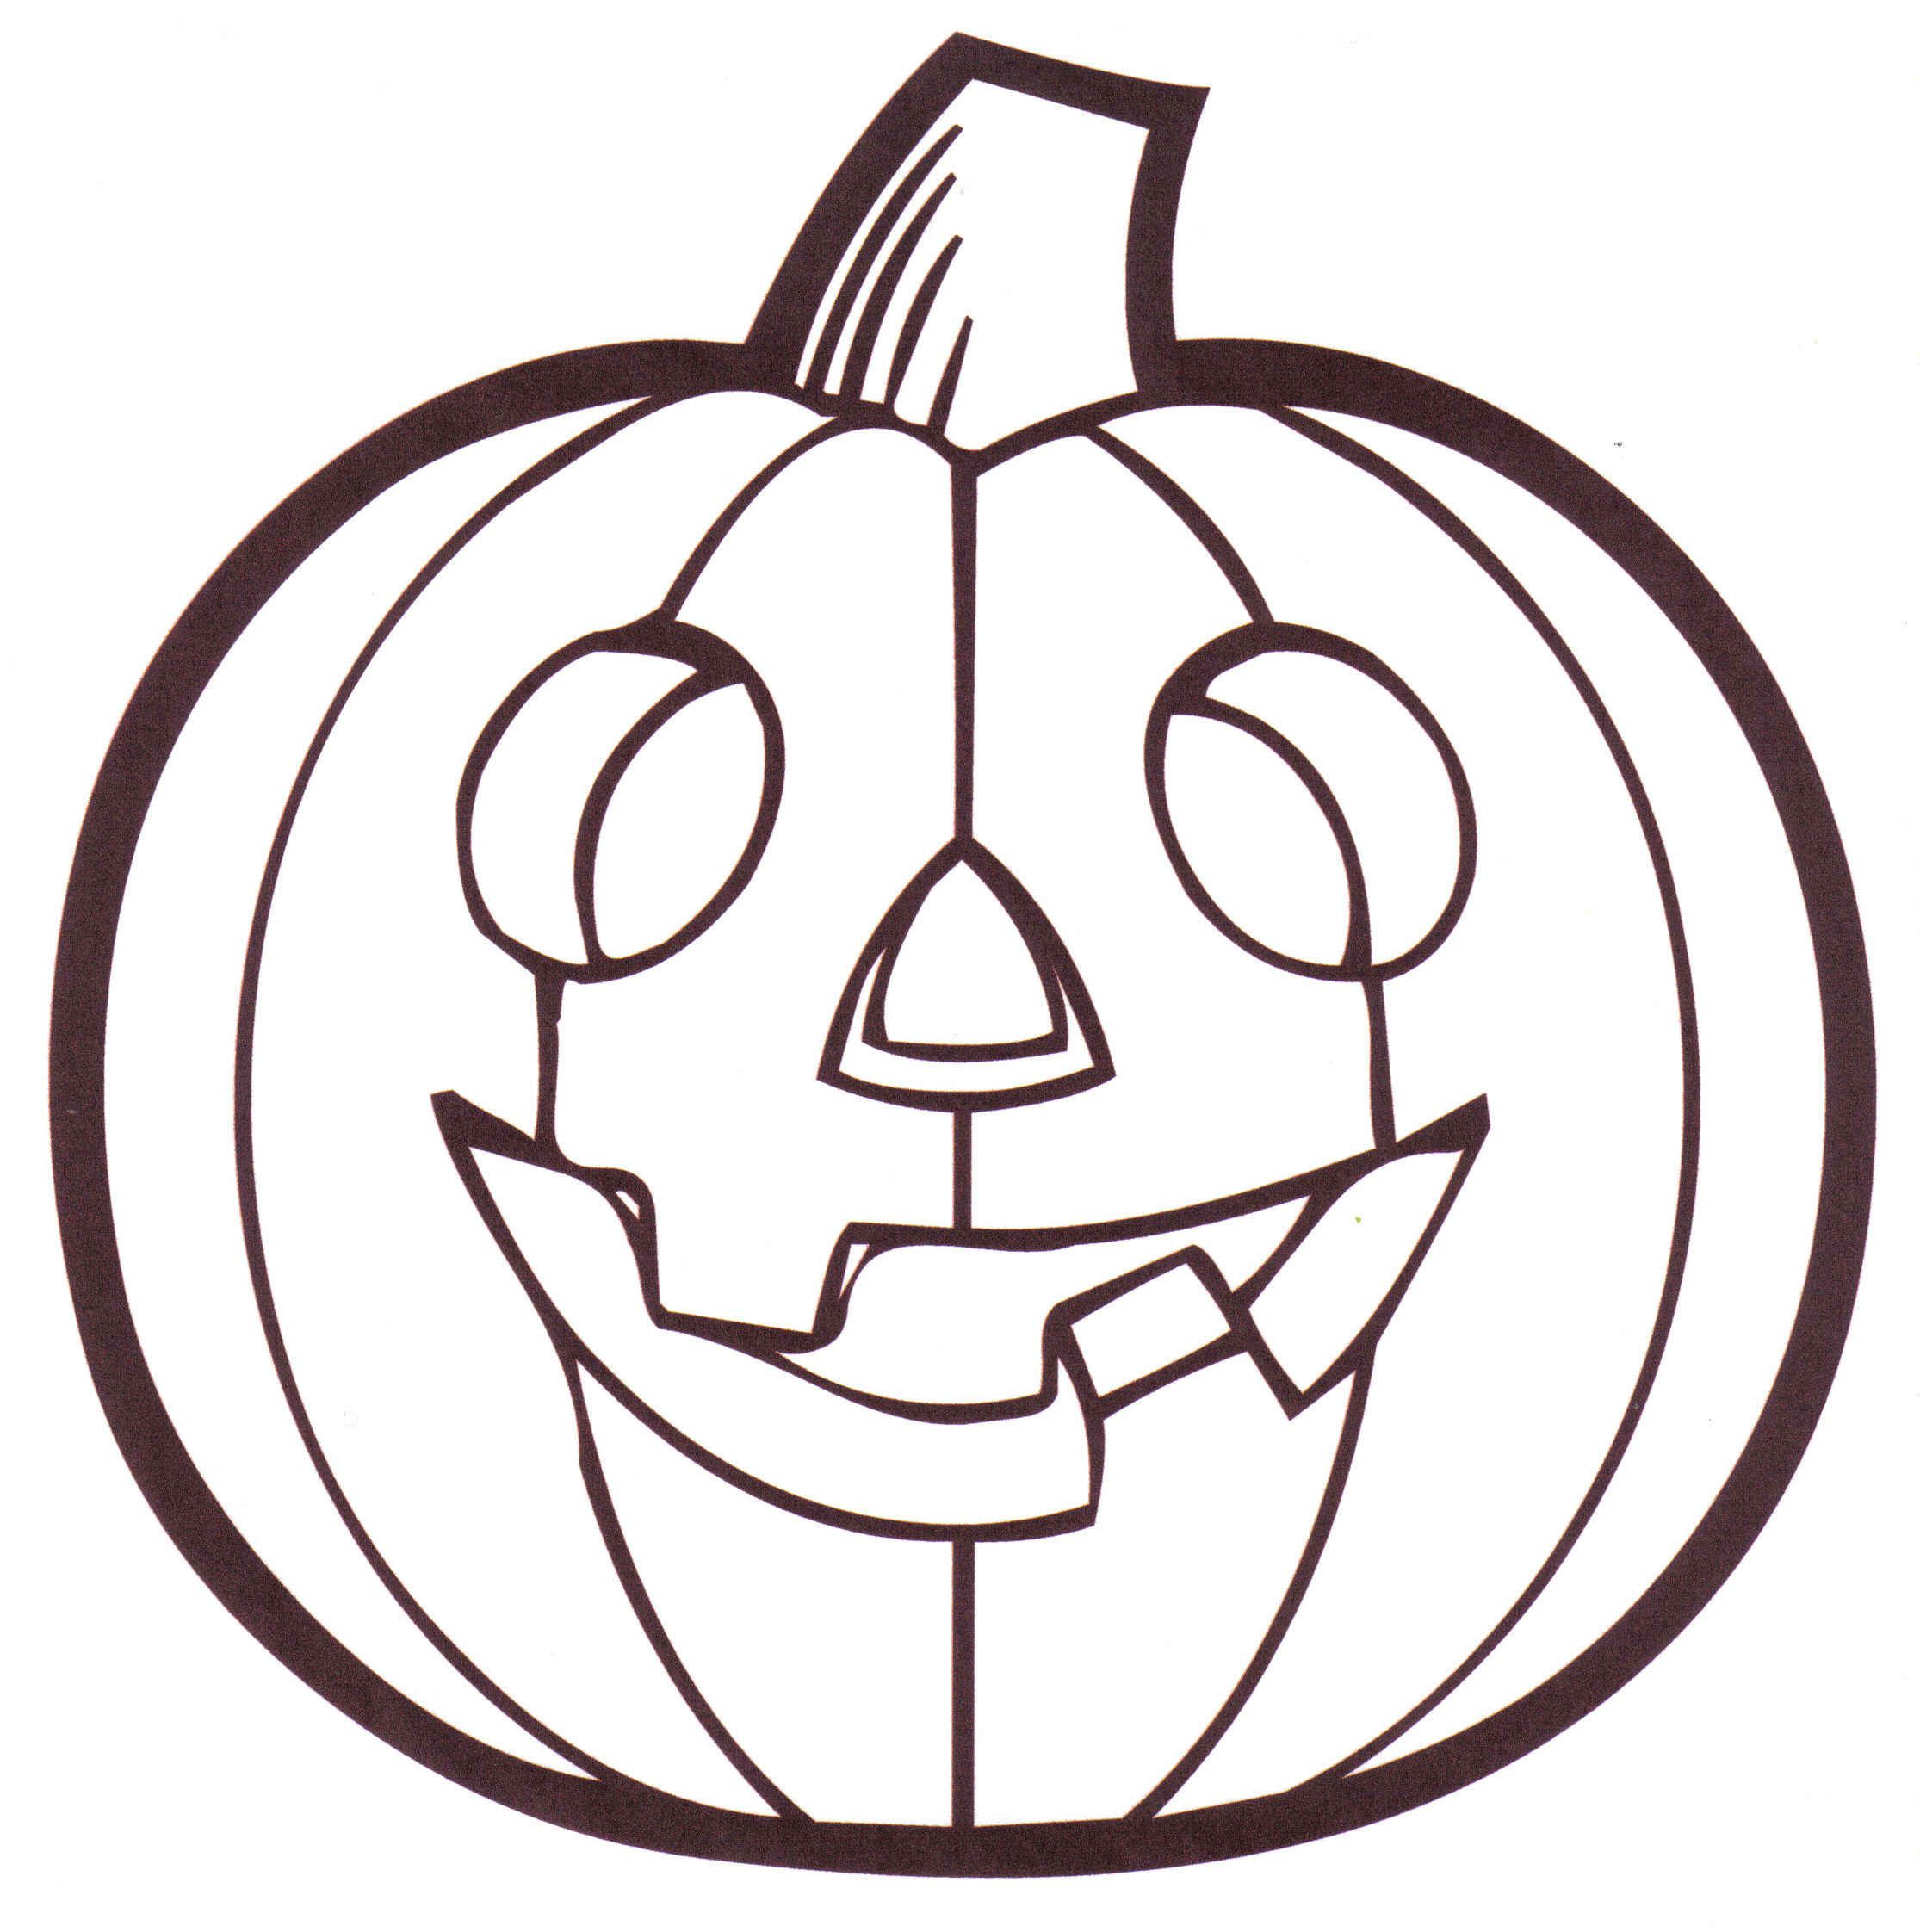 pumpkin coloring pictures free online printable coloring pages sheets for kids get the latest free pumpkin coloring pictures images favorite coloring - Free Jack O Lantern Coloring Pages